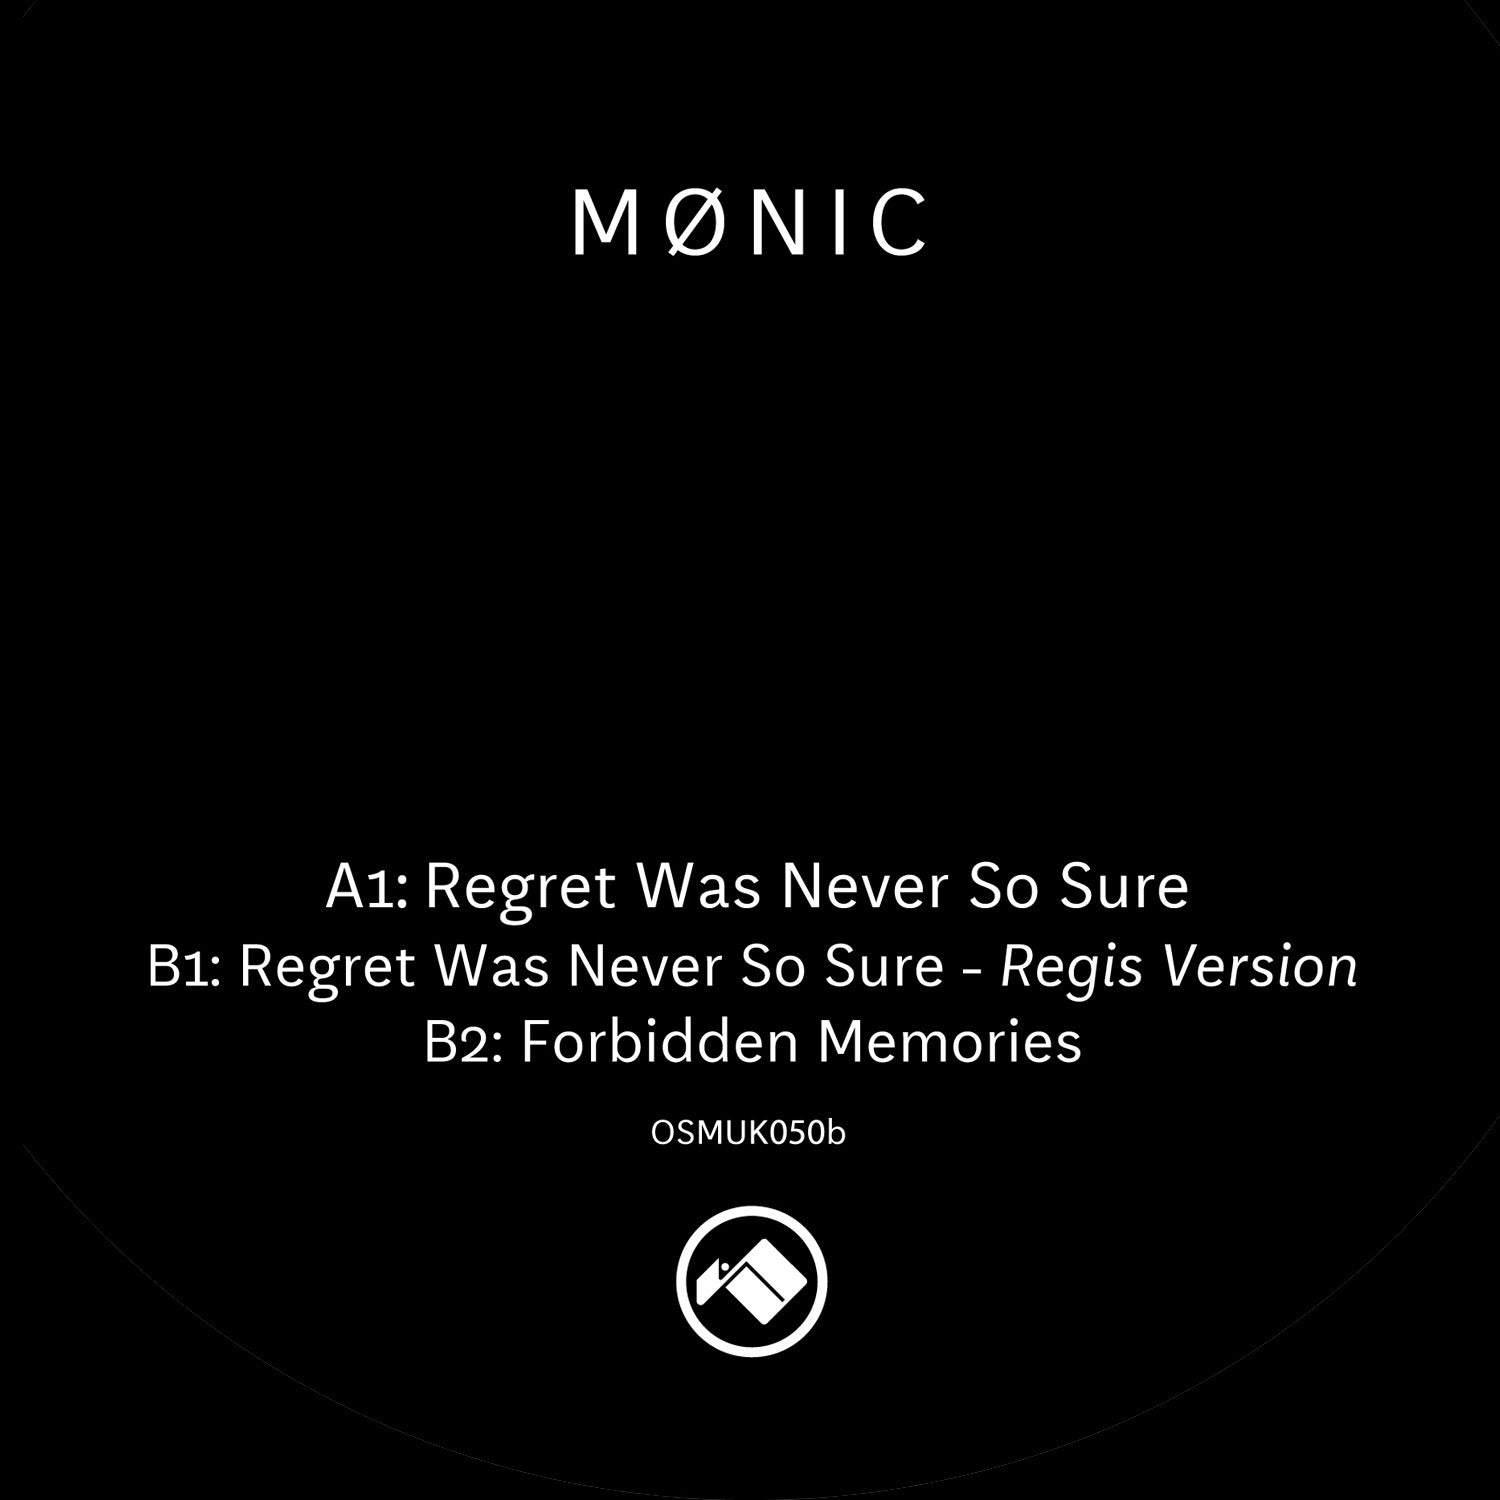 Mønic - Regret Was Never So Sure / (Regis Version)